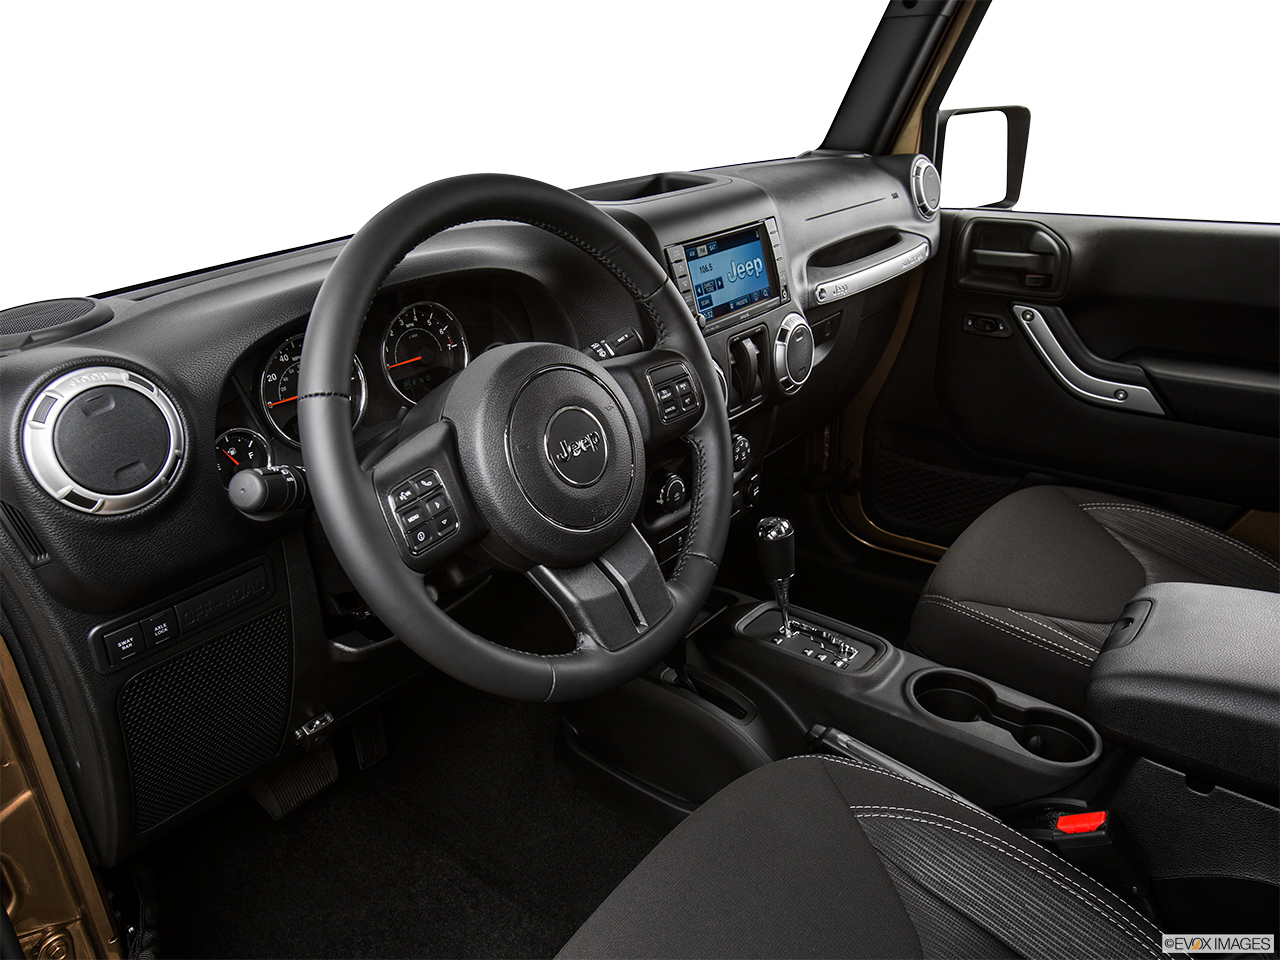 Black Jeep Wrangler 2 Door Interior | www.pixshark.com ...